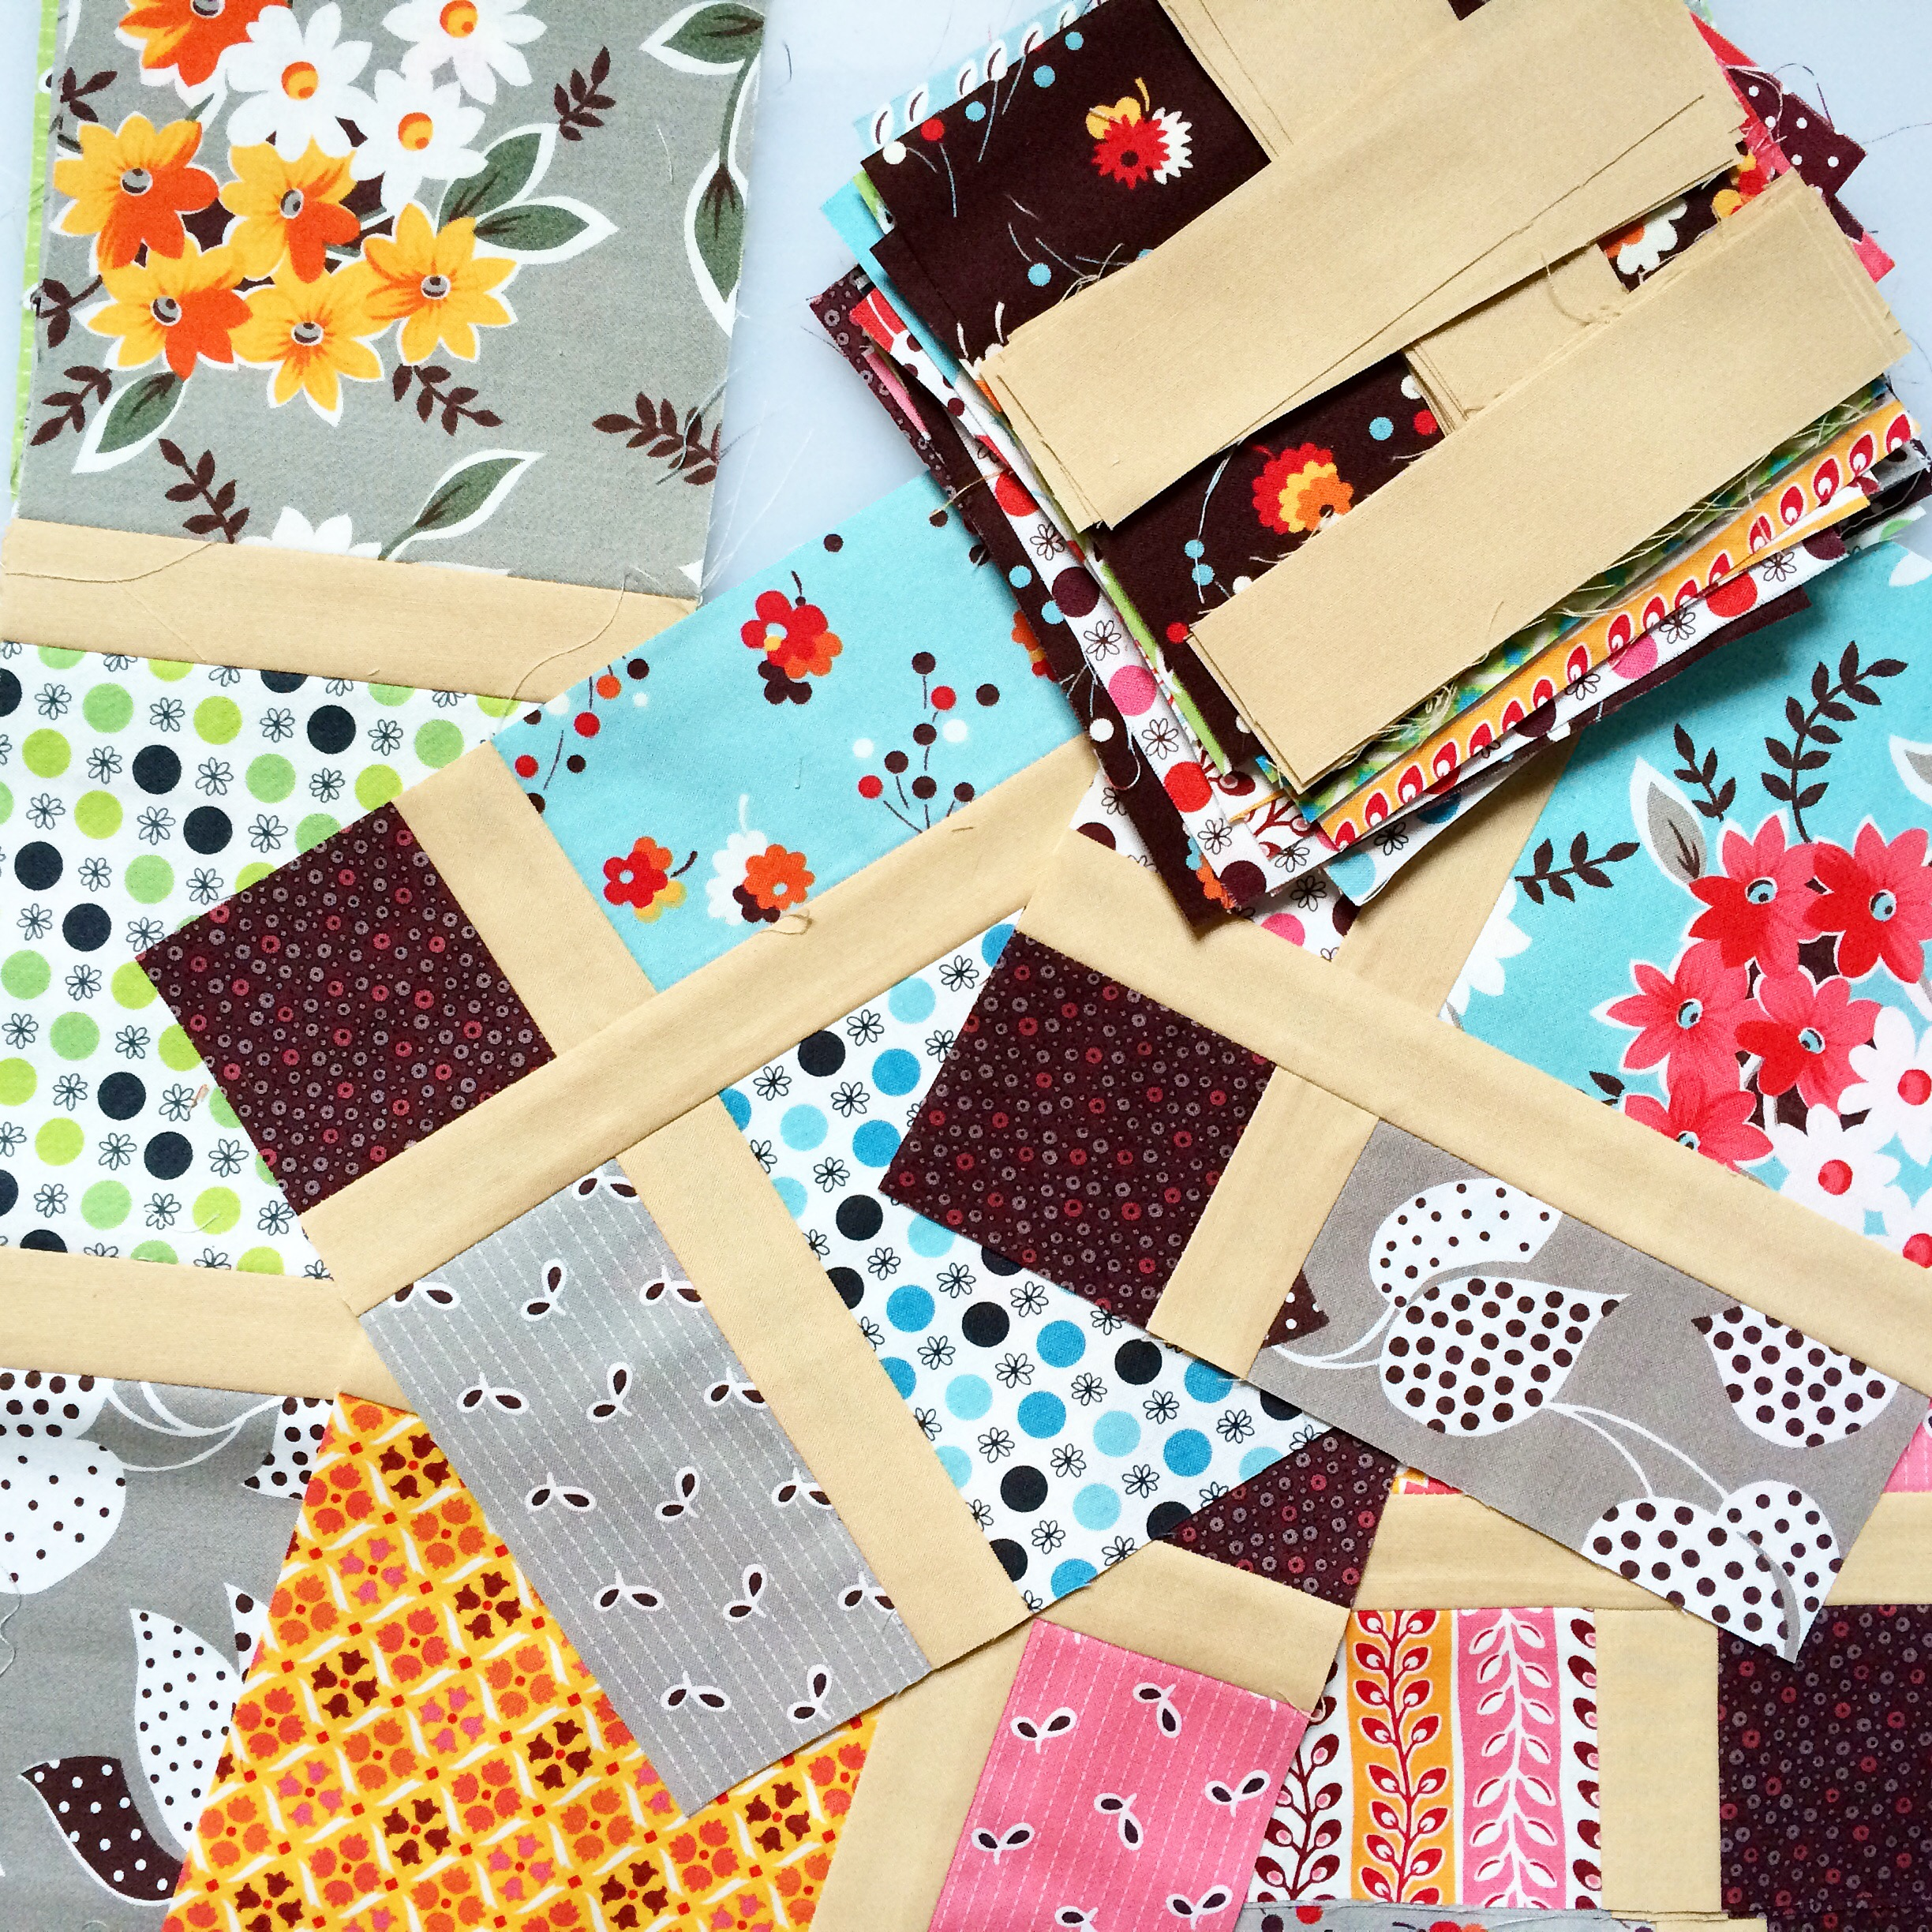 Quilting Designs Sashing : Disappearing nine-patch with sashing: a quick tutorial lillyella